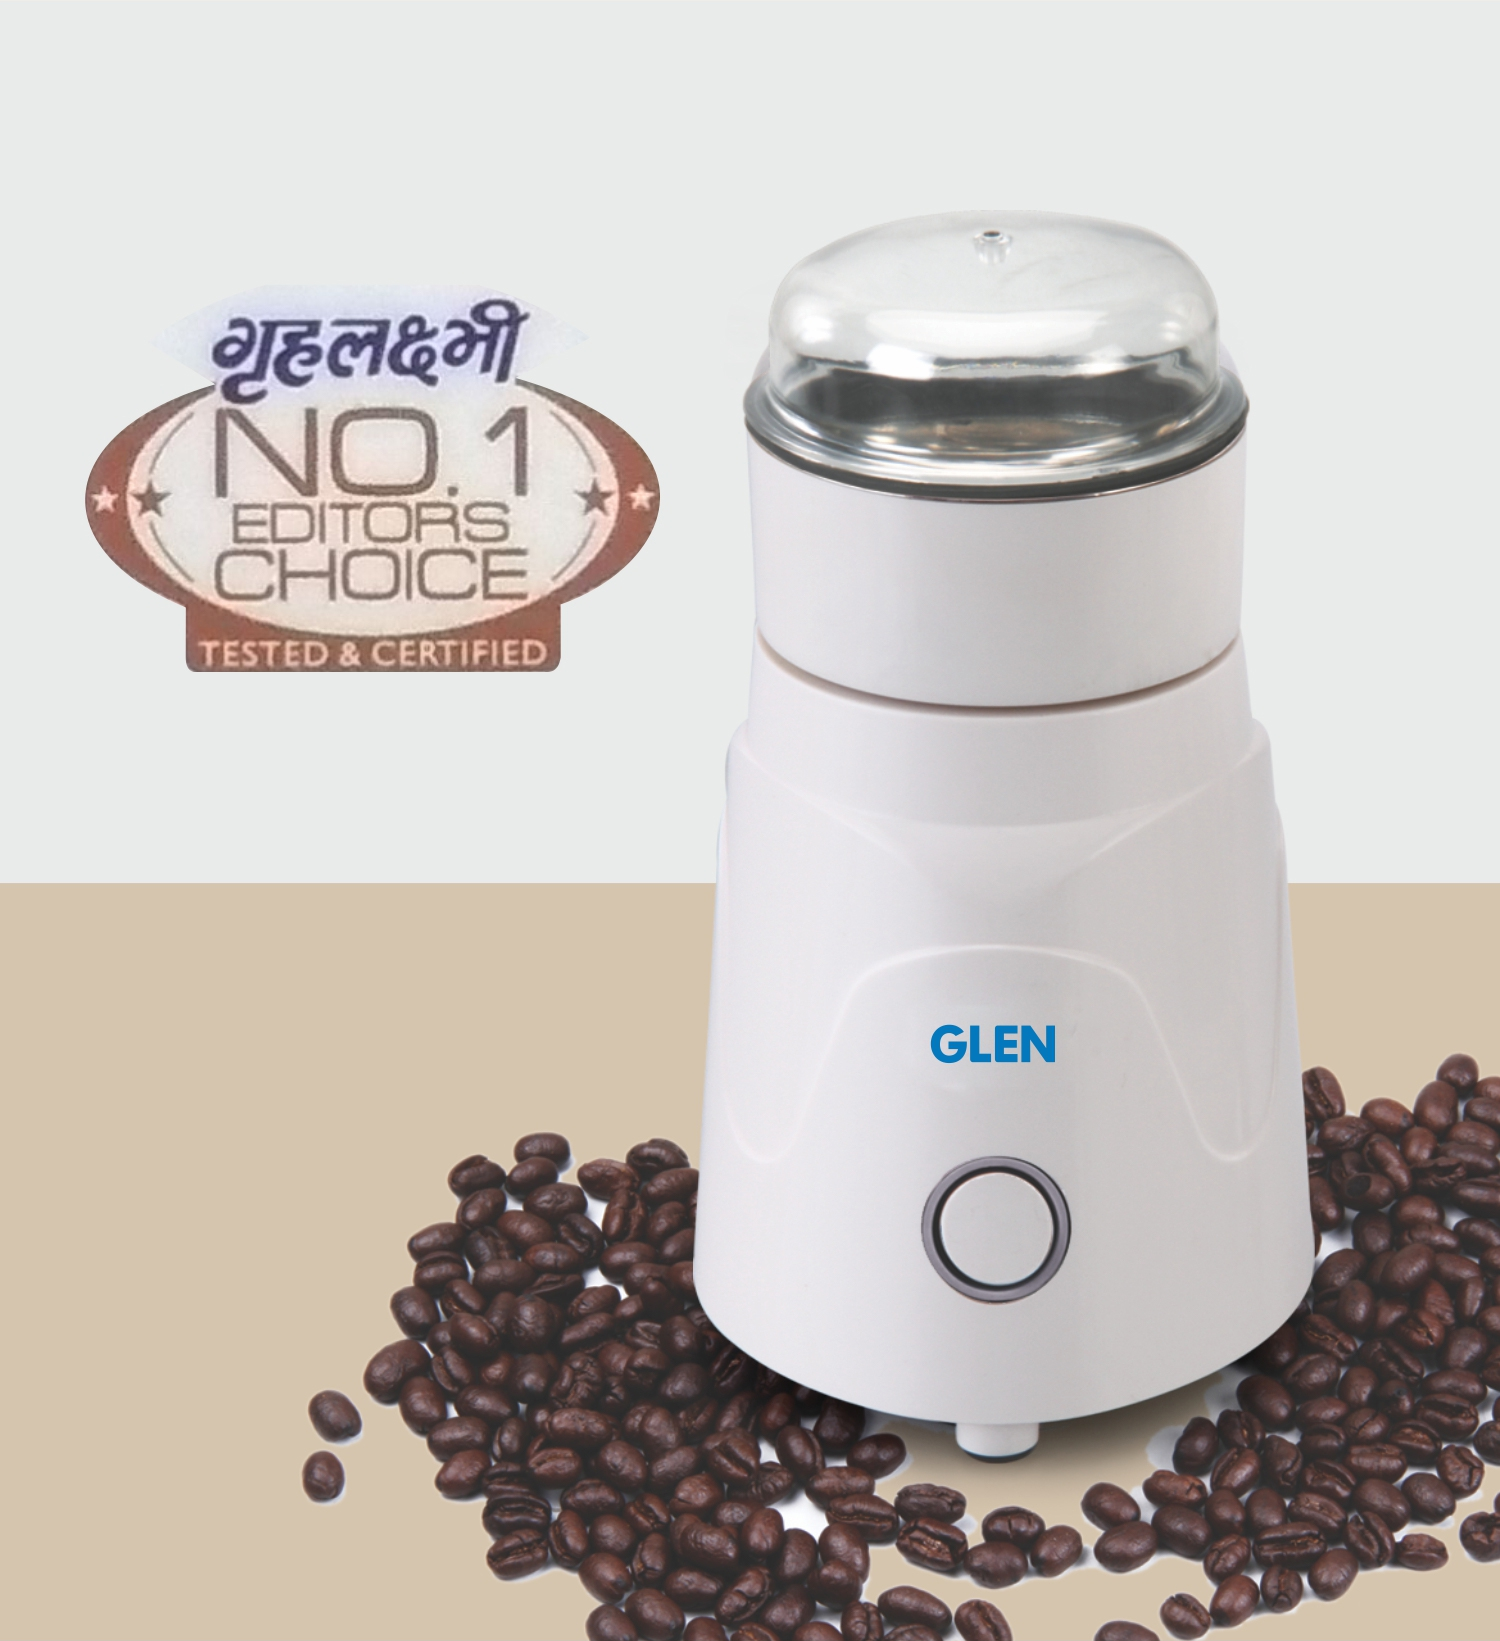 Buy Glen Mini Grinder 4045G 350 W Online at Best Price In India